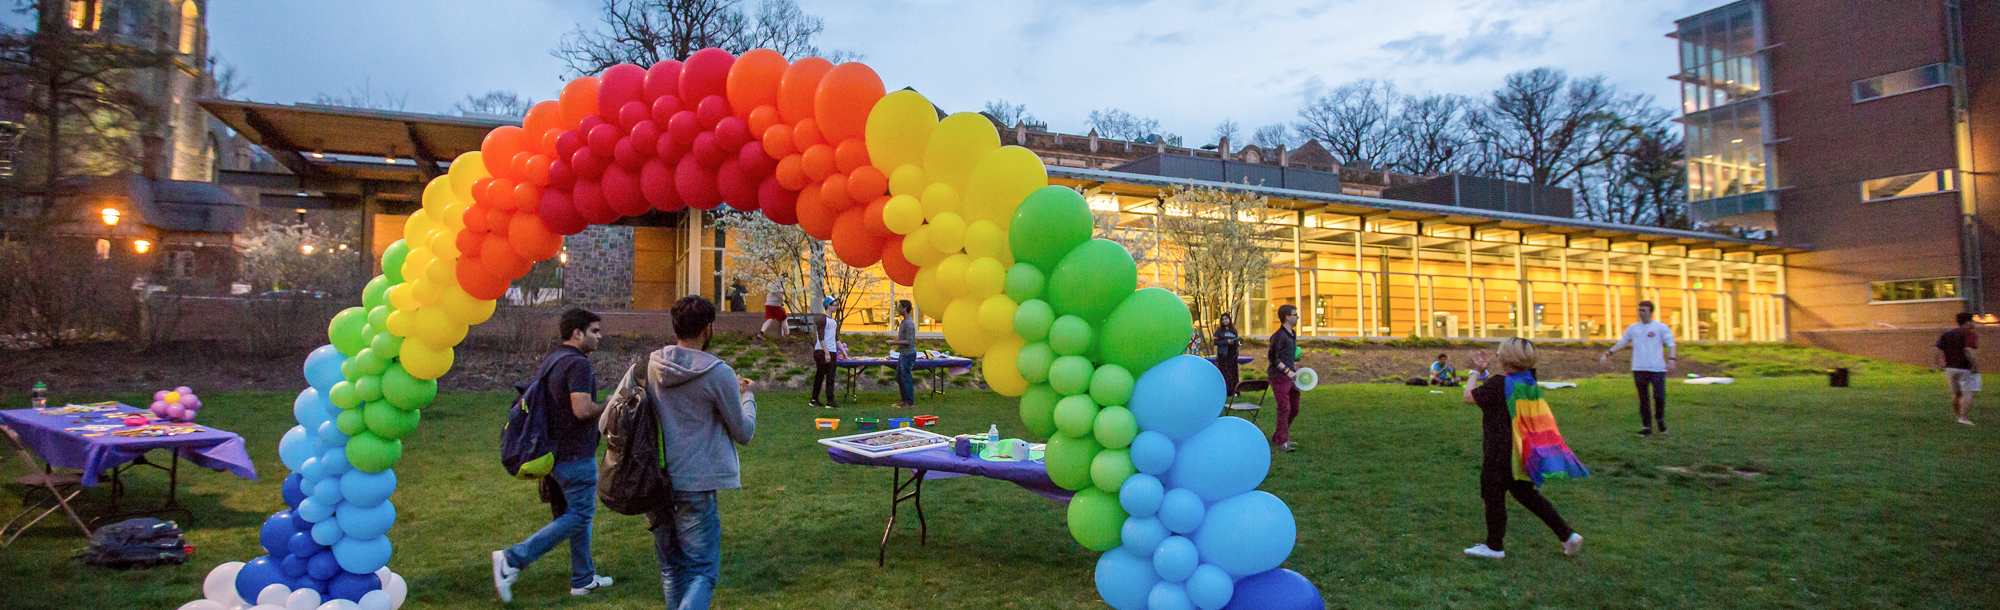 Balloon arch in rainbow colors